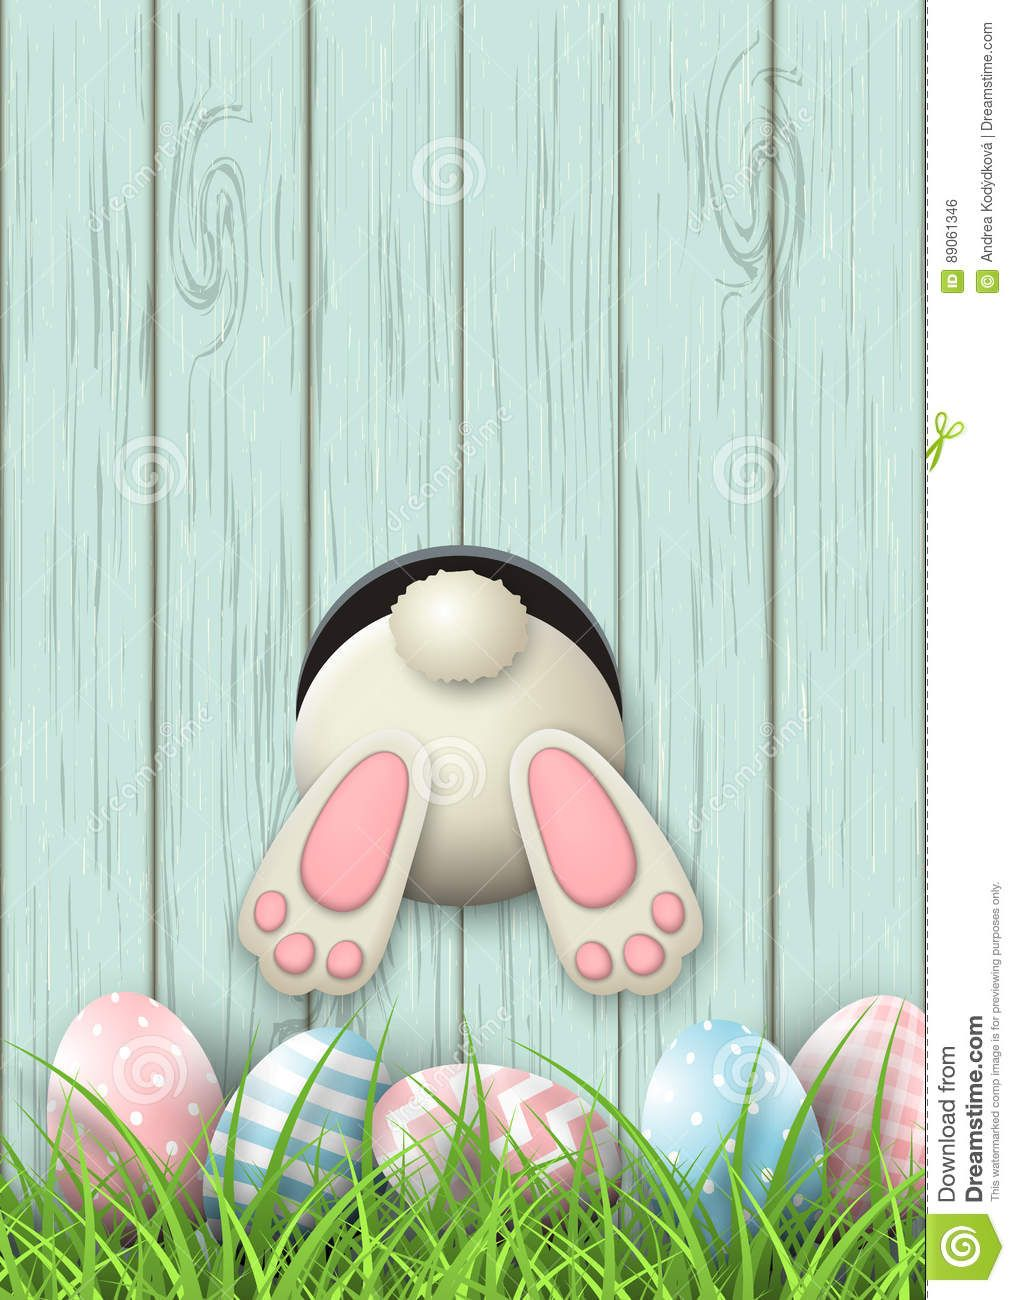 Easter Motive Bunny Bottom And Easter Eggs In Fresh Grass On Blue Wooden Background Illustration Happy Easter Wallpaper Easter Wallpaper Easter Backgrounds